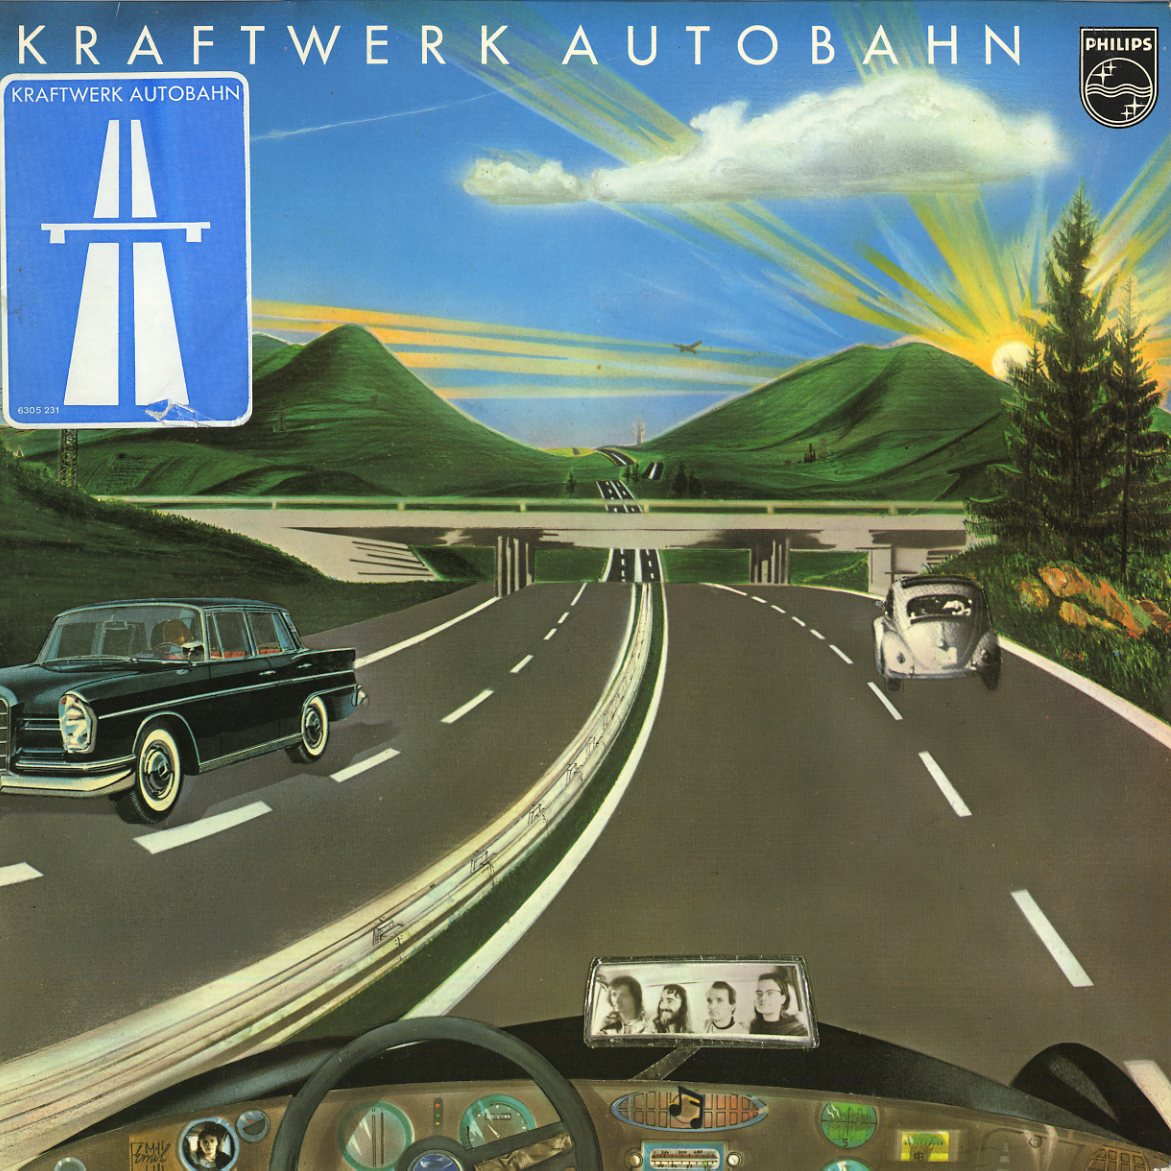 Kraftwerk's fourth studio album 'Autobahn' was released on ...Kraftwerk Autobahn